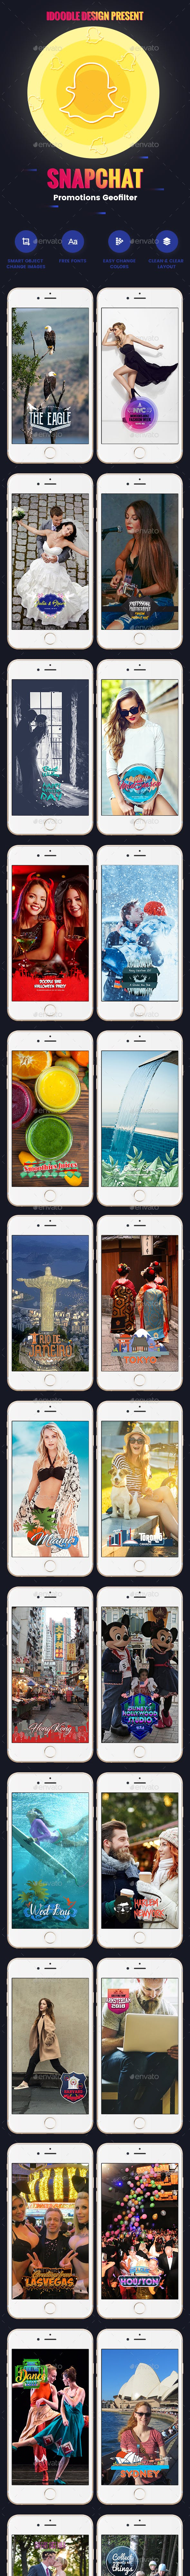 promotion geofilters snapchat 30 psd special pack by idoodle